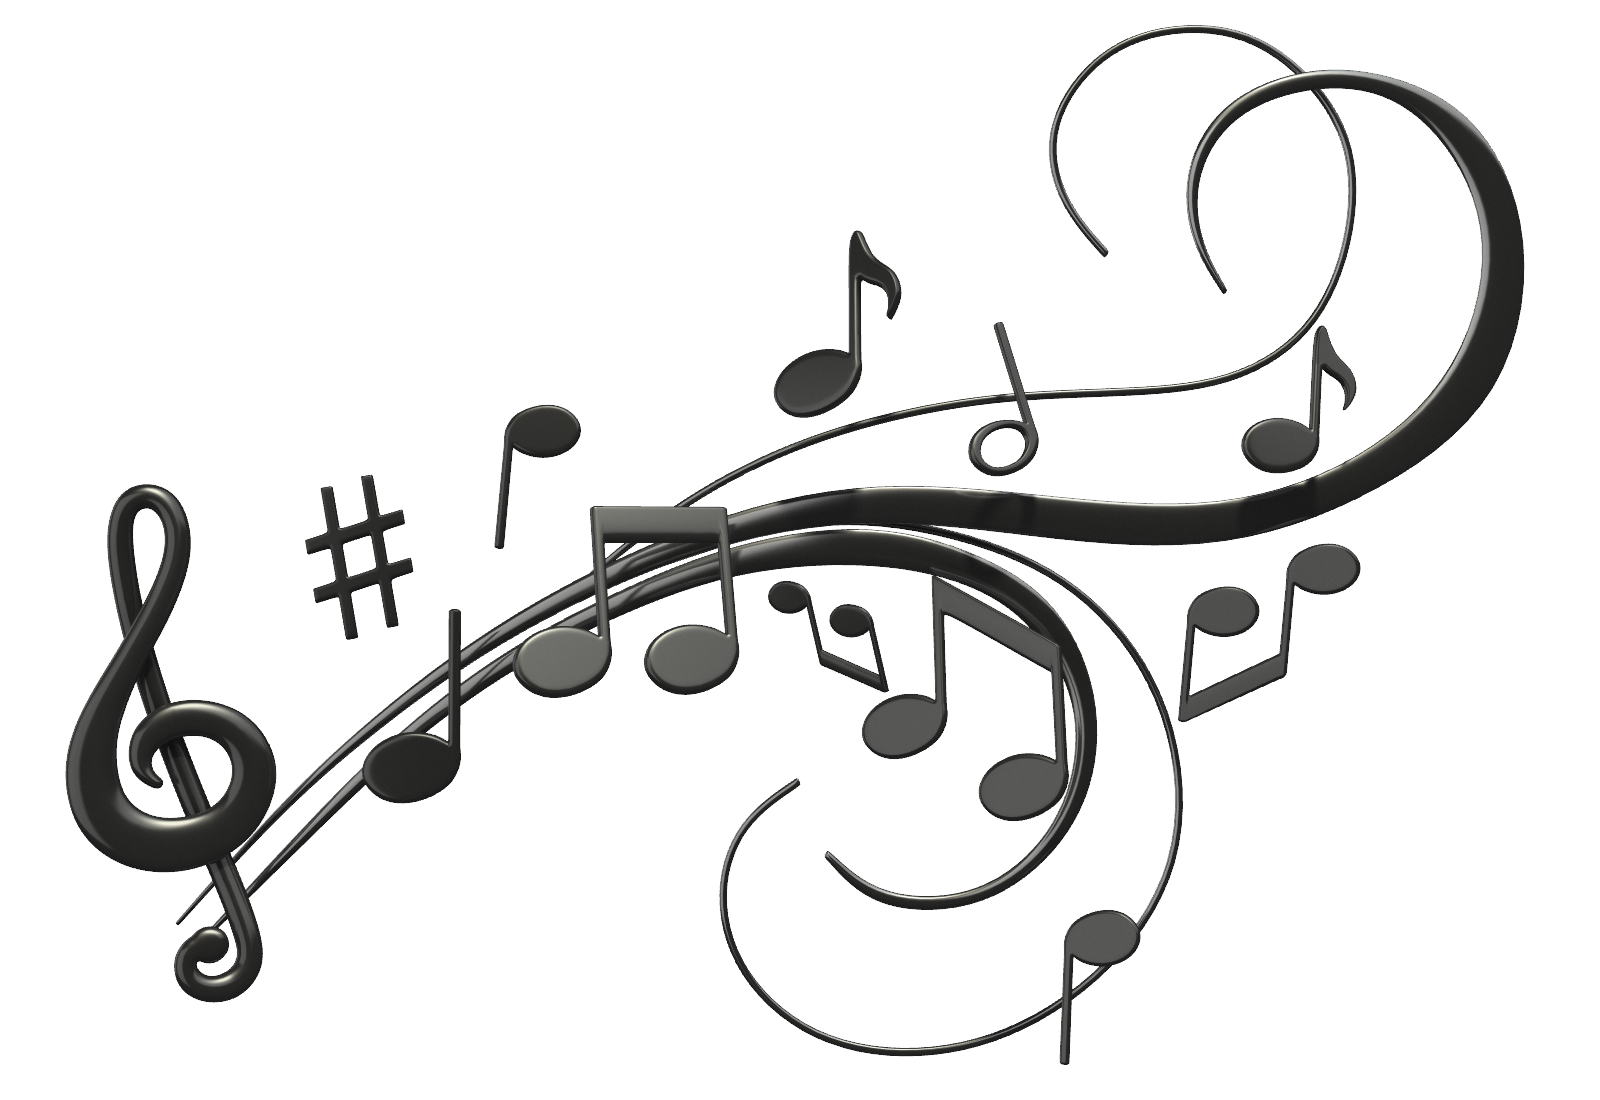 Music note clipart jazz. Pin by zijafenu on